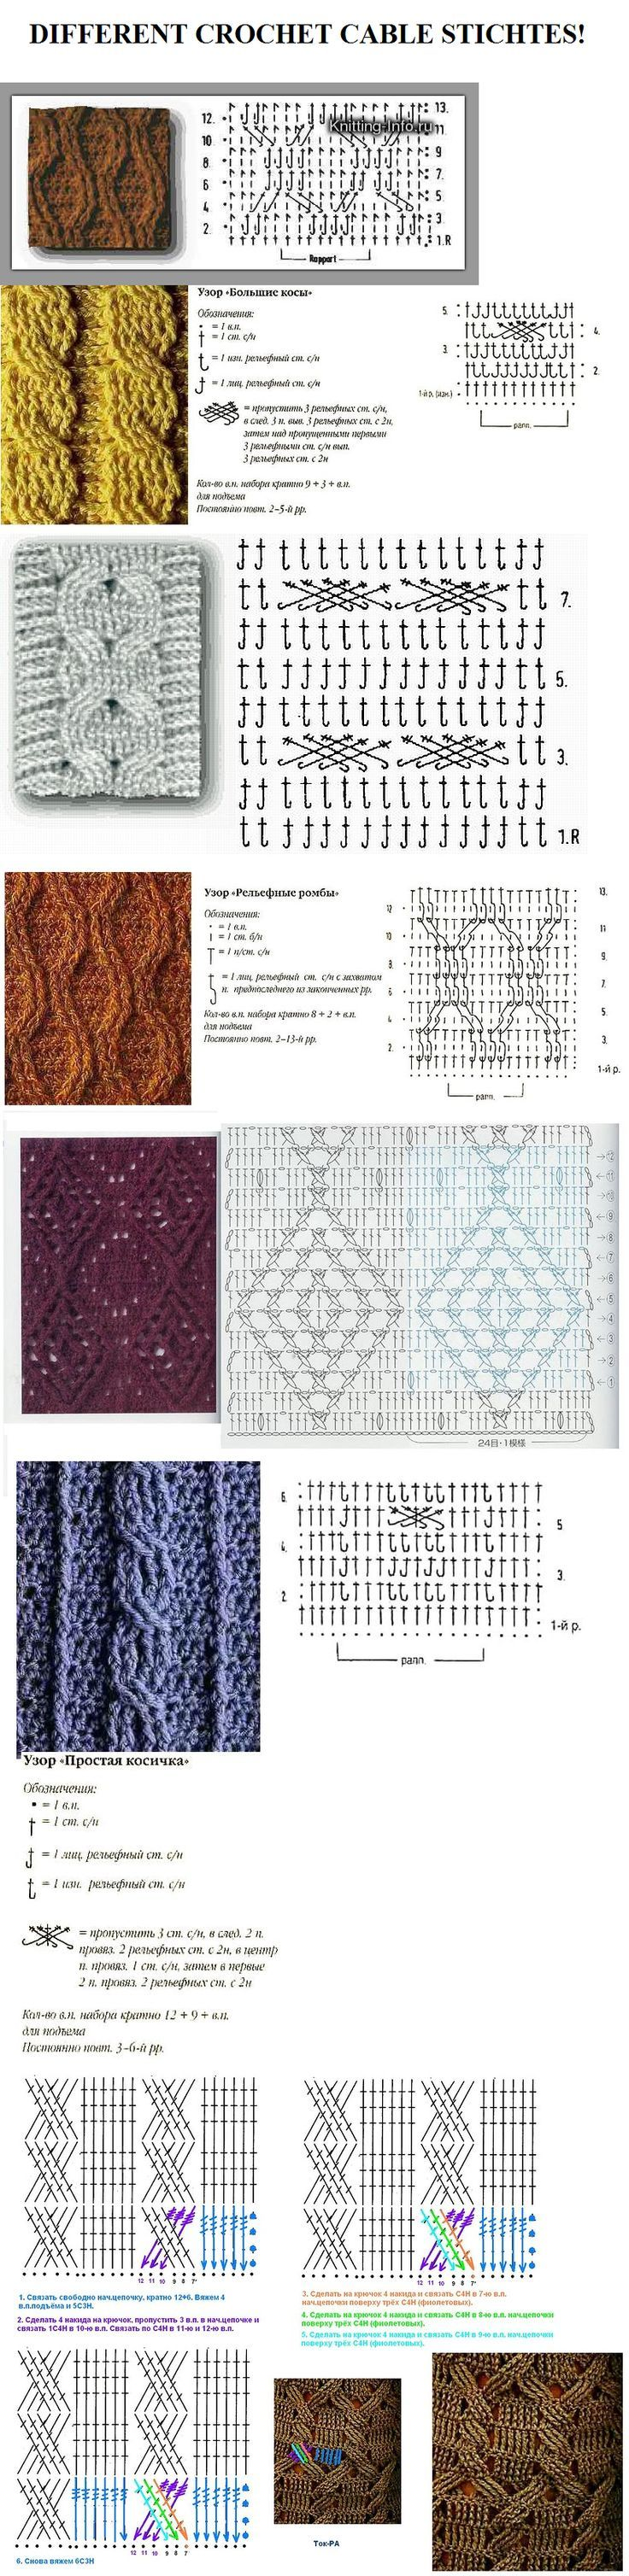 Crochet Cable Stitch : ... Cable Stitches, Crochet Cable Stitches, Crochet Cable Stich, Knits